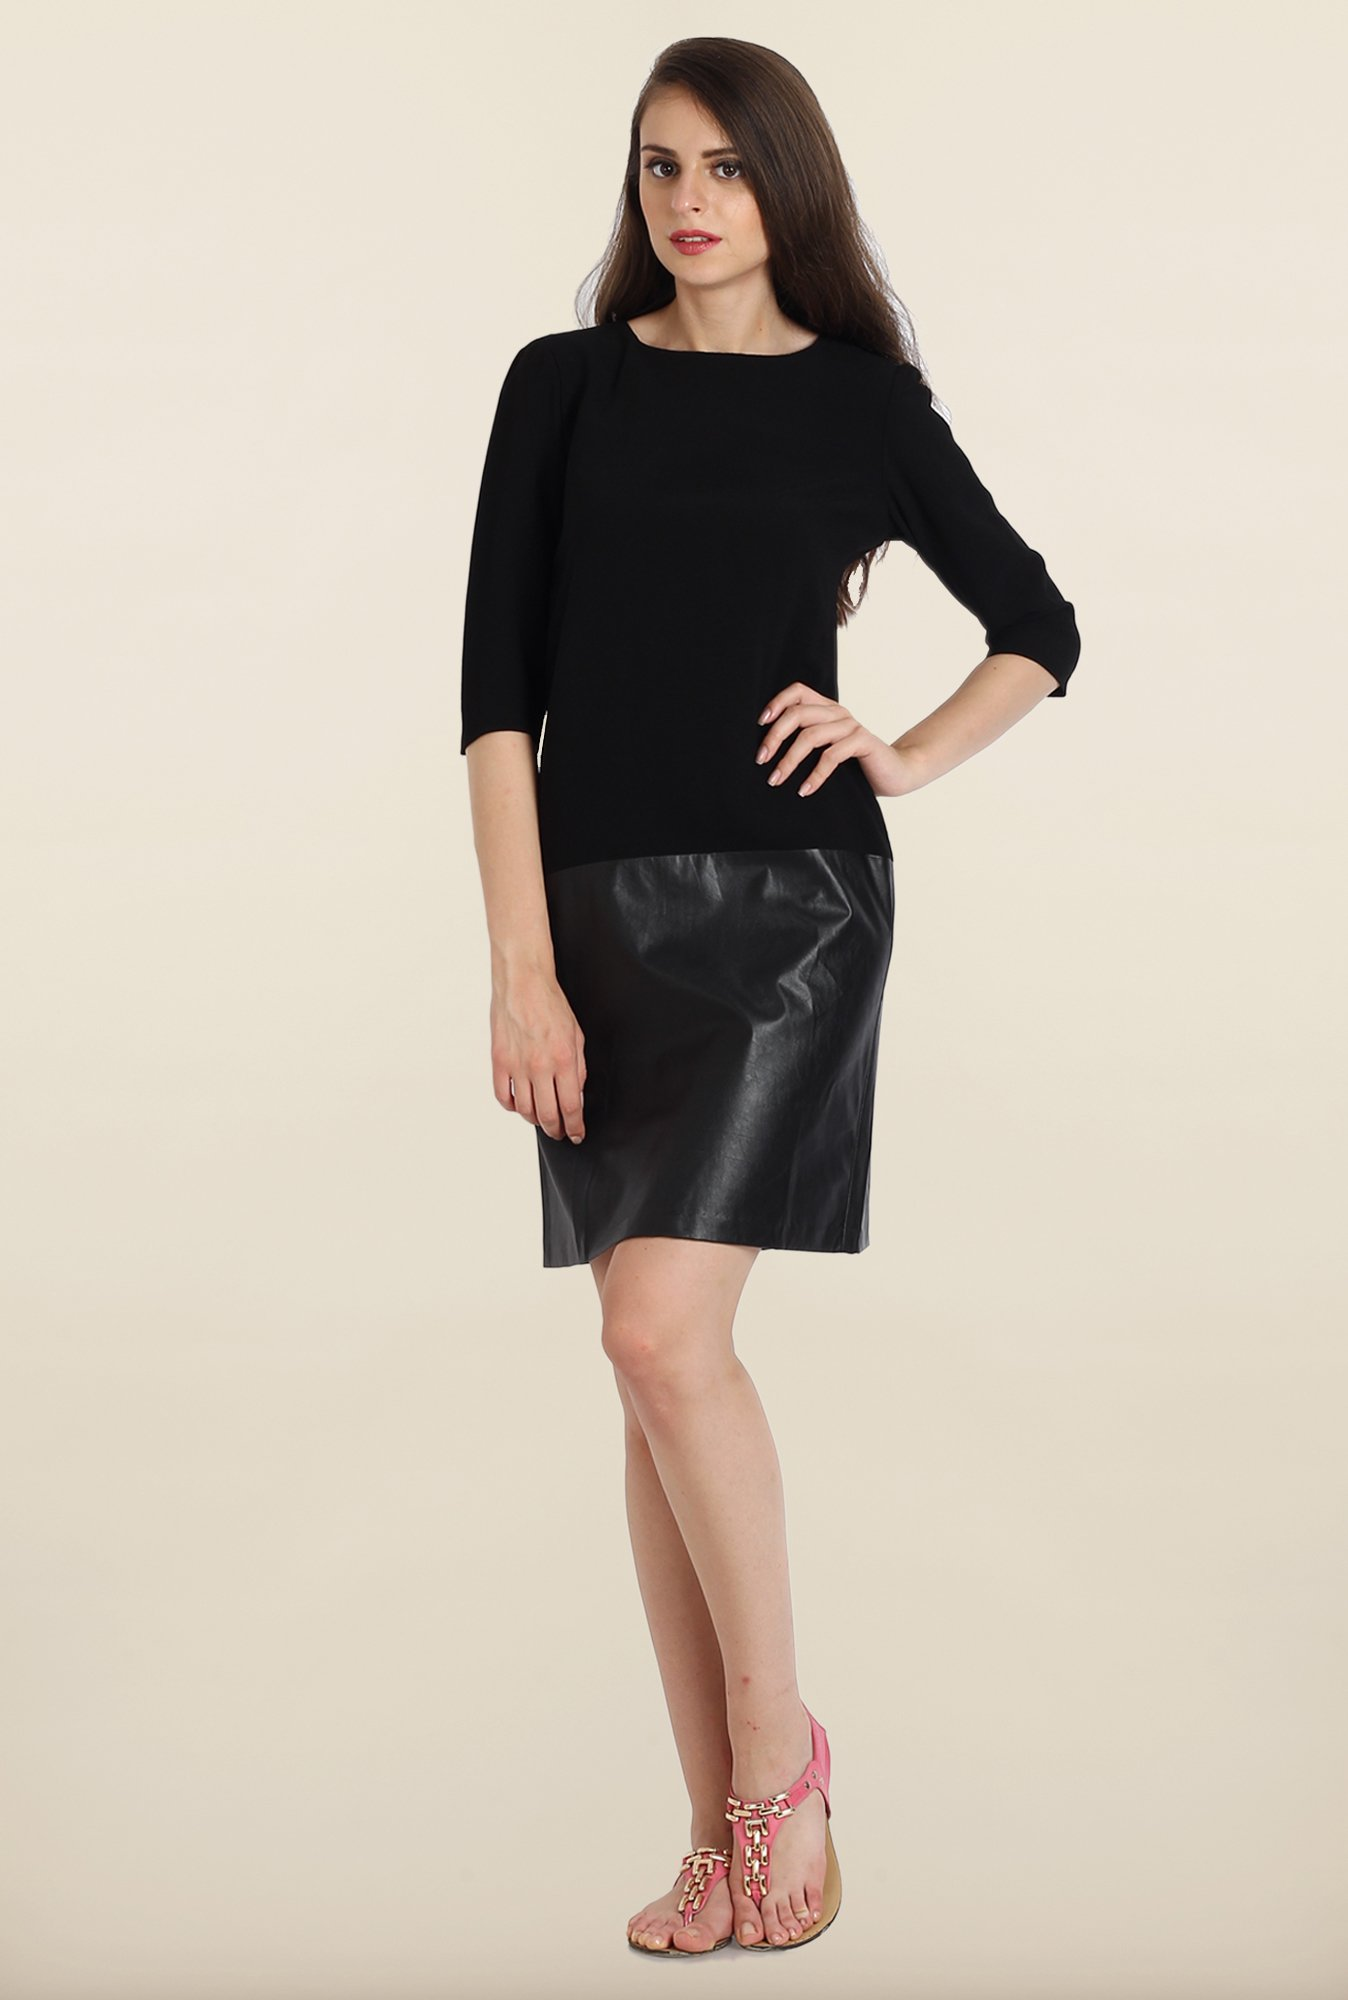 Avirate Black Casual Shift Dress